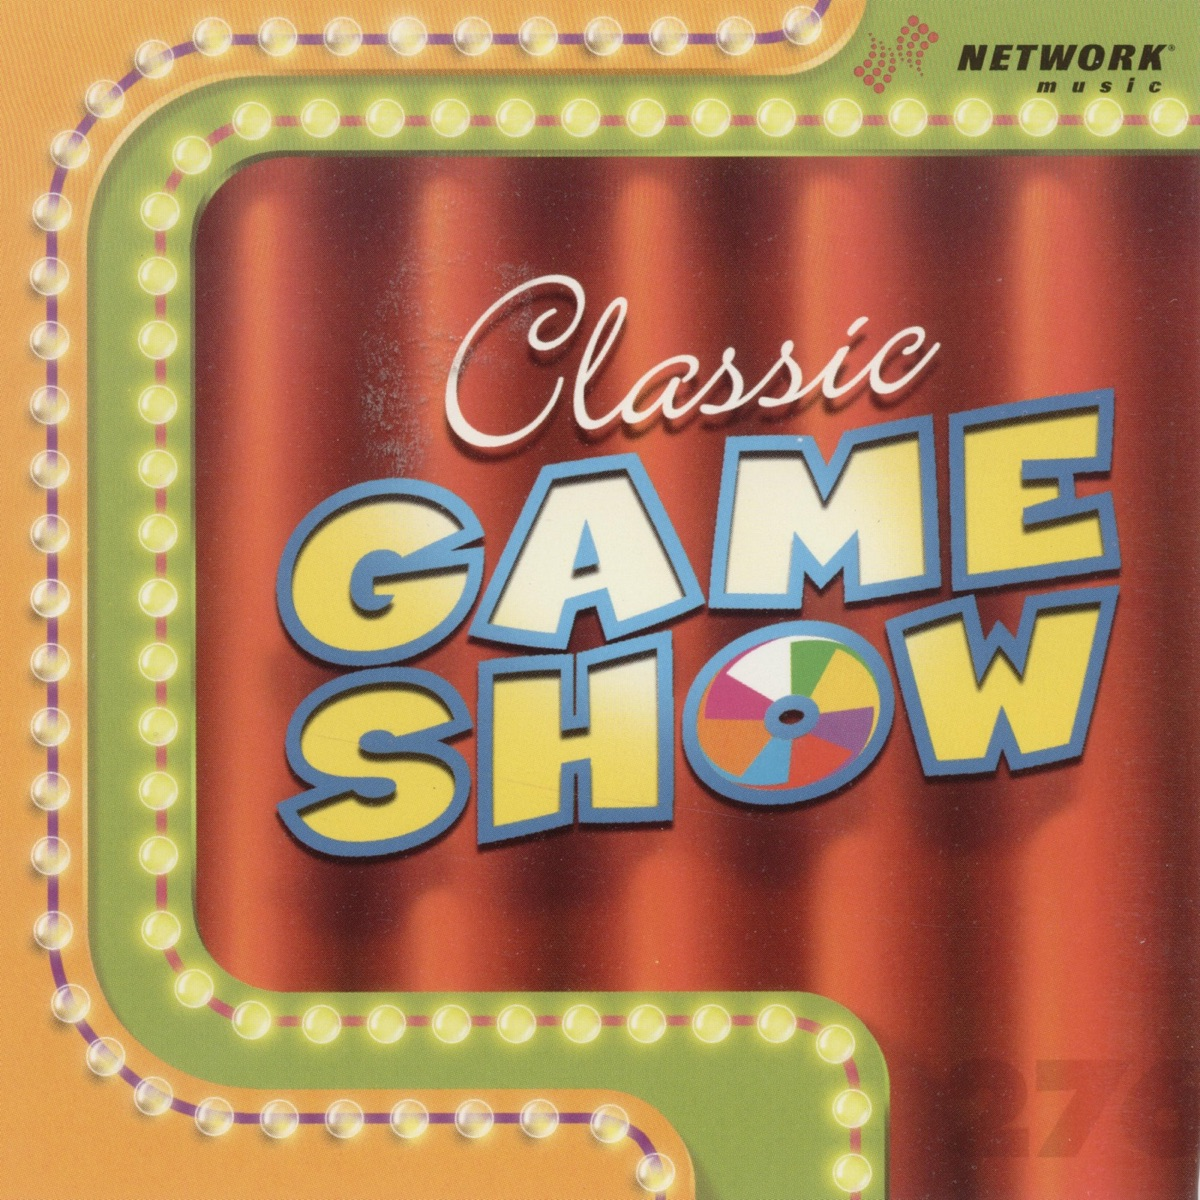 Classic Game Show Album Cover by Network Music Ensemble